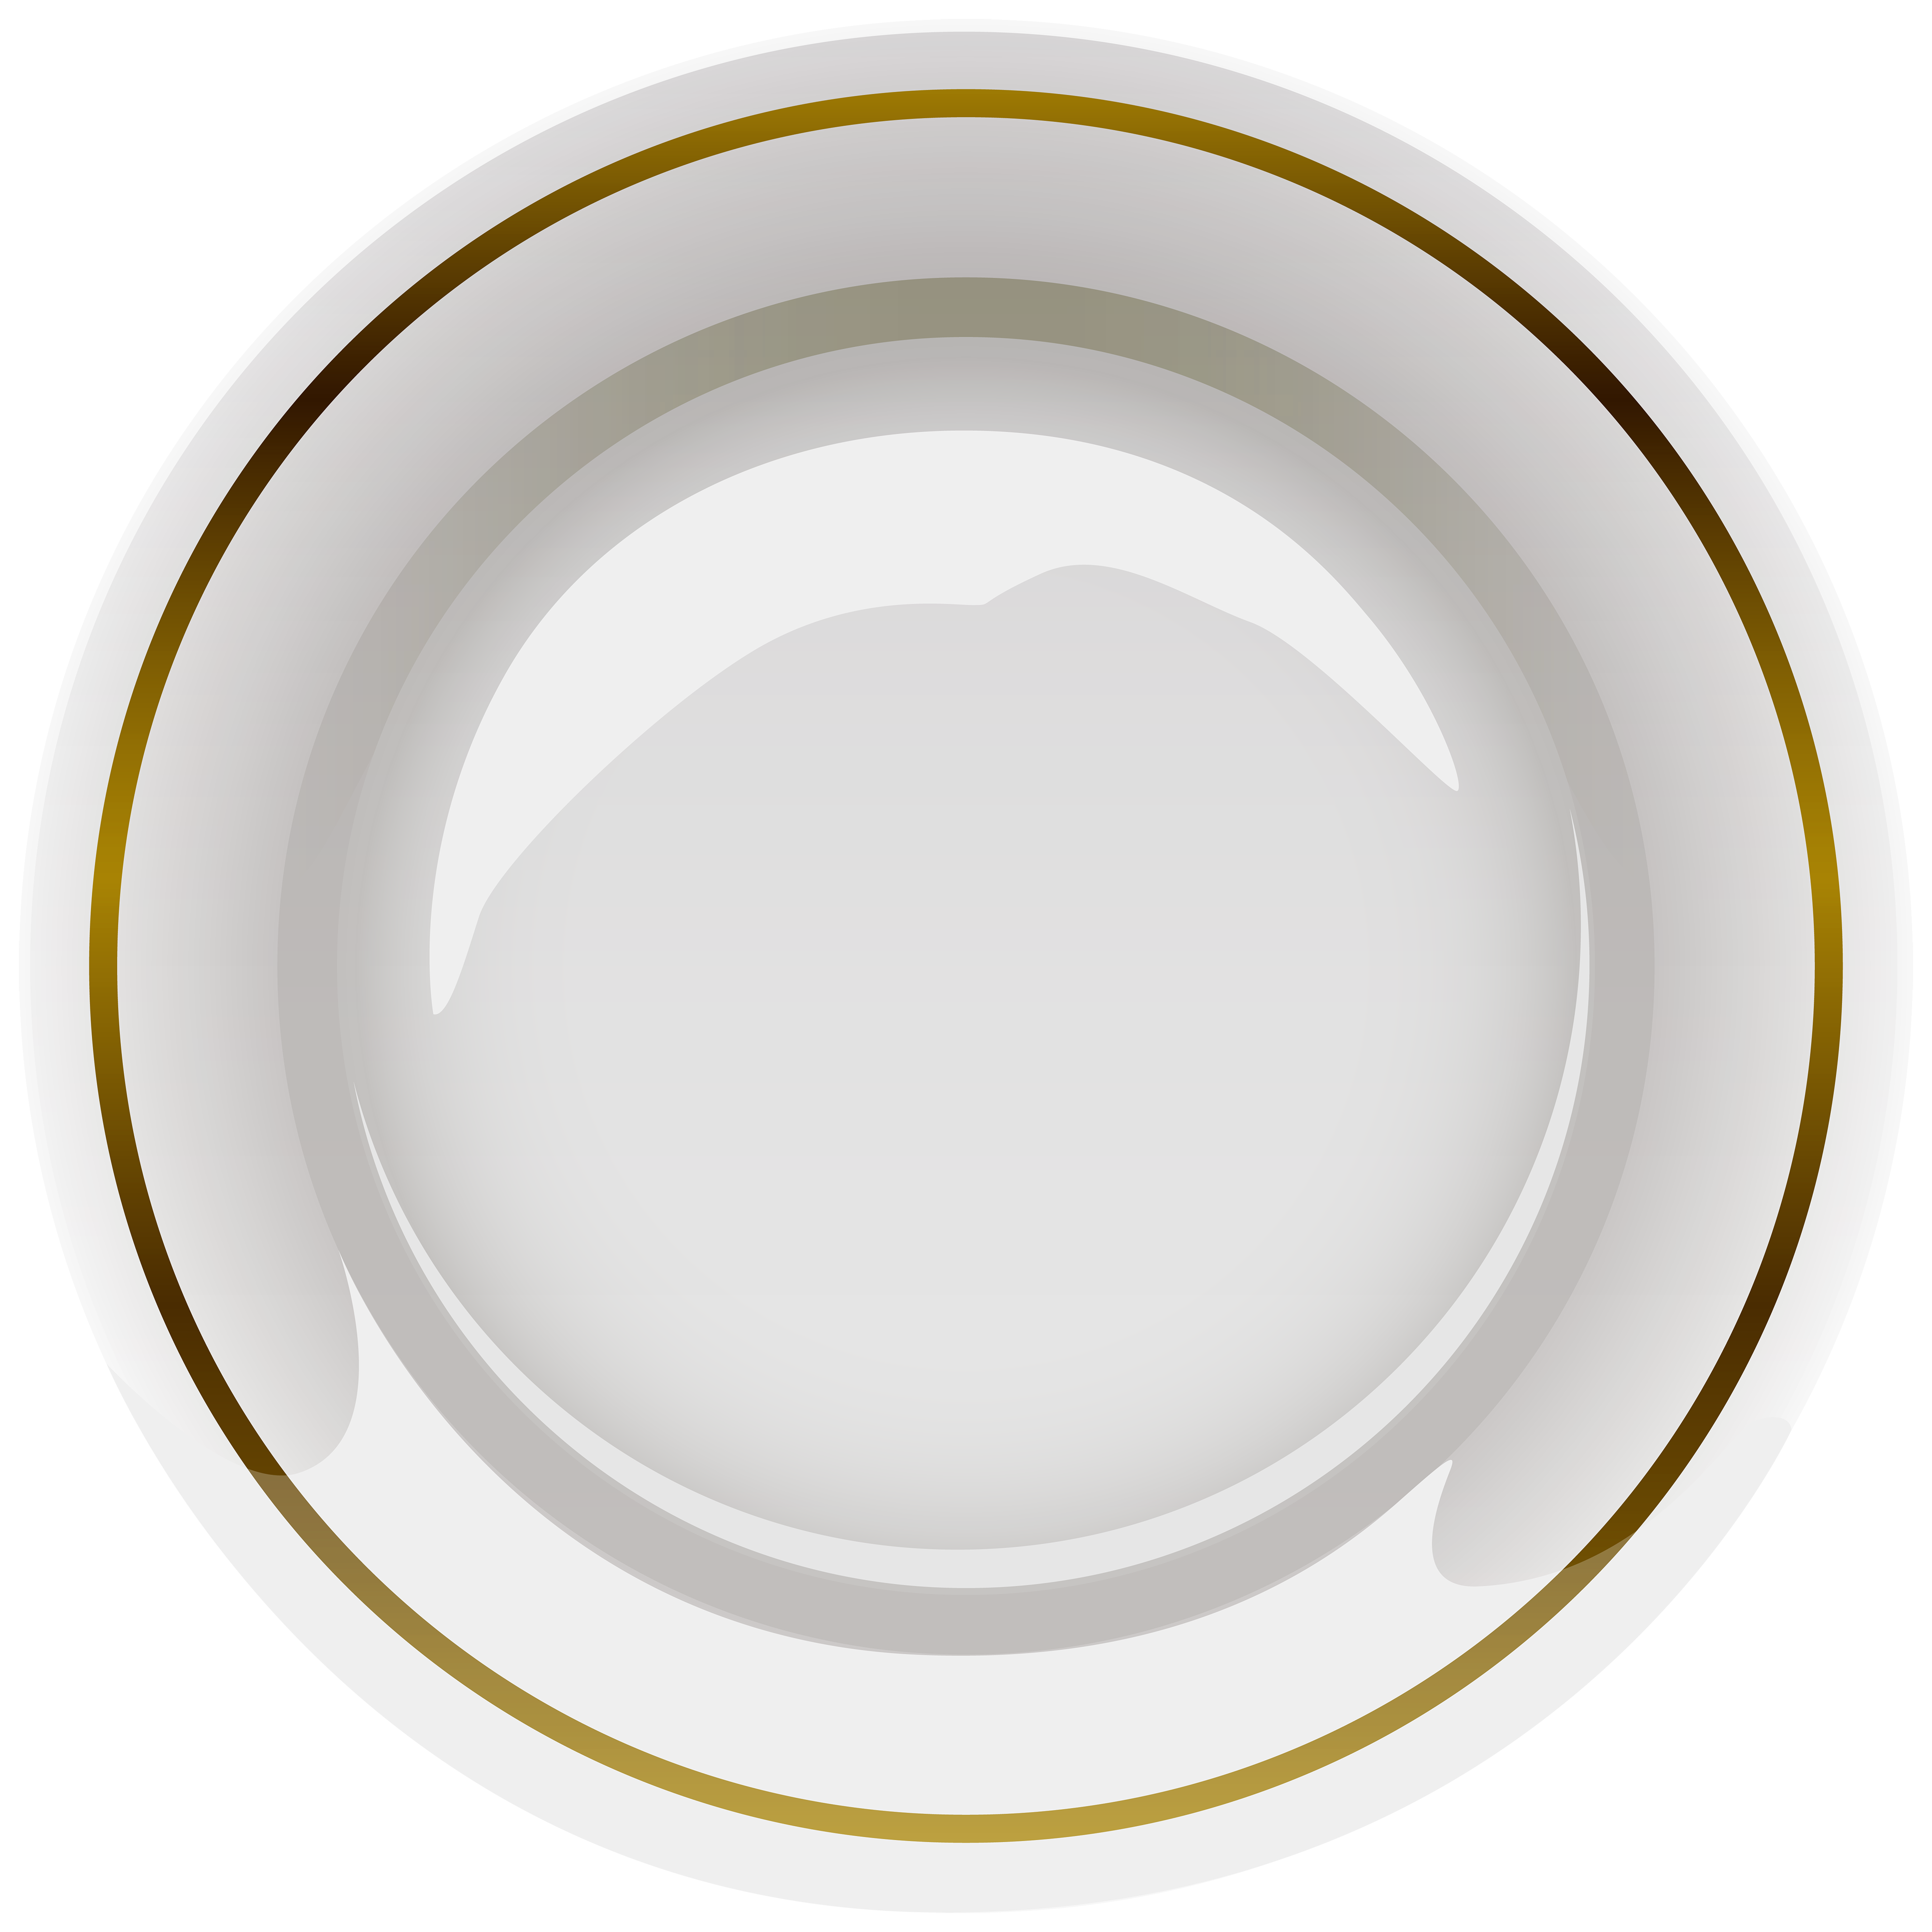 image library download Plate clipart. Elegant png best web.